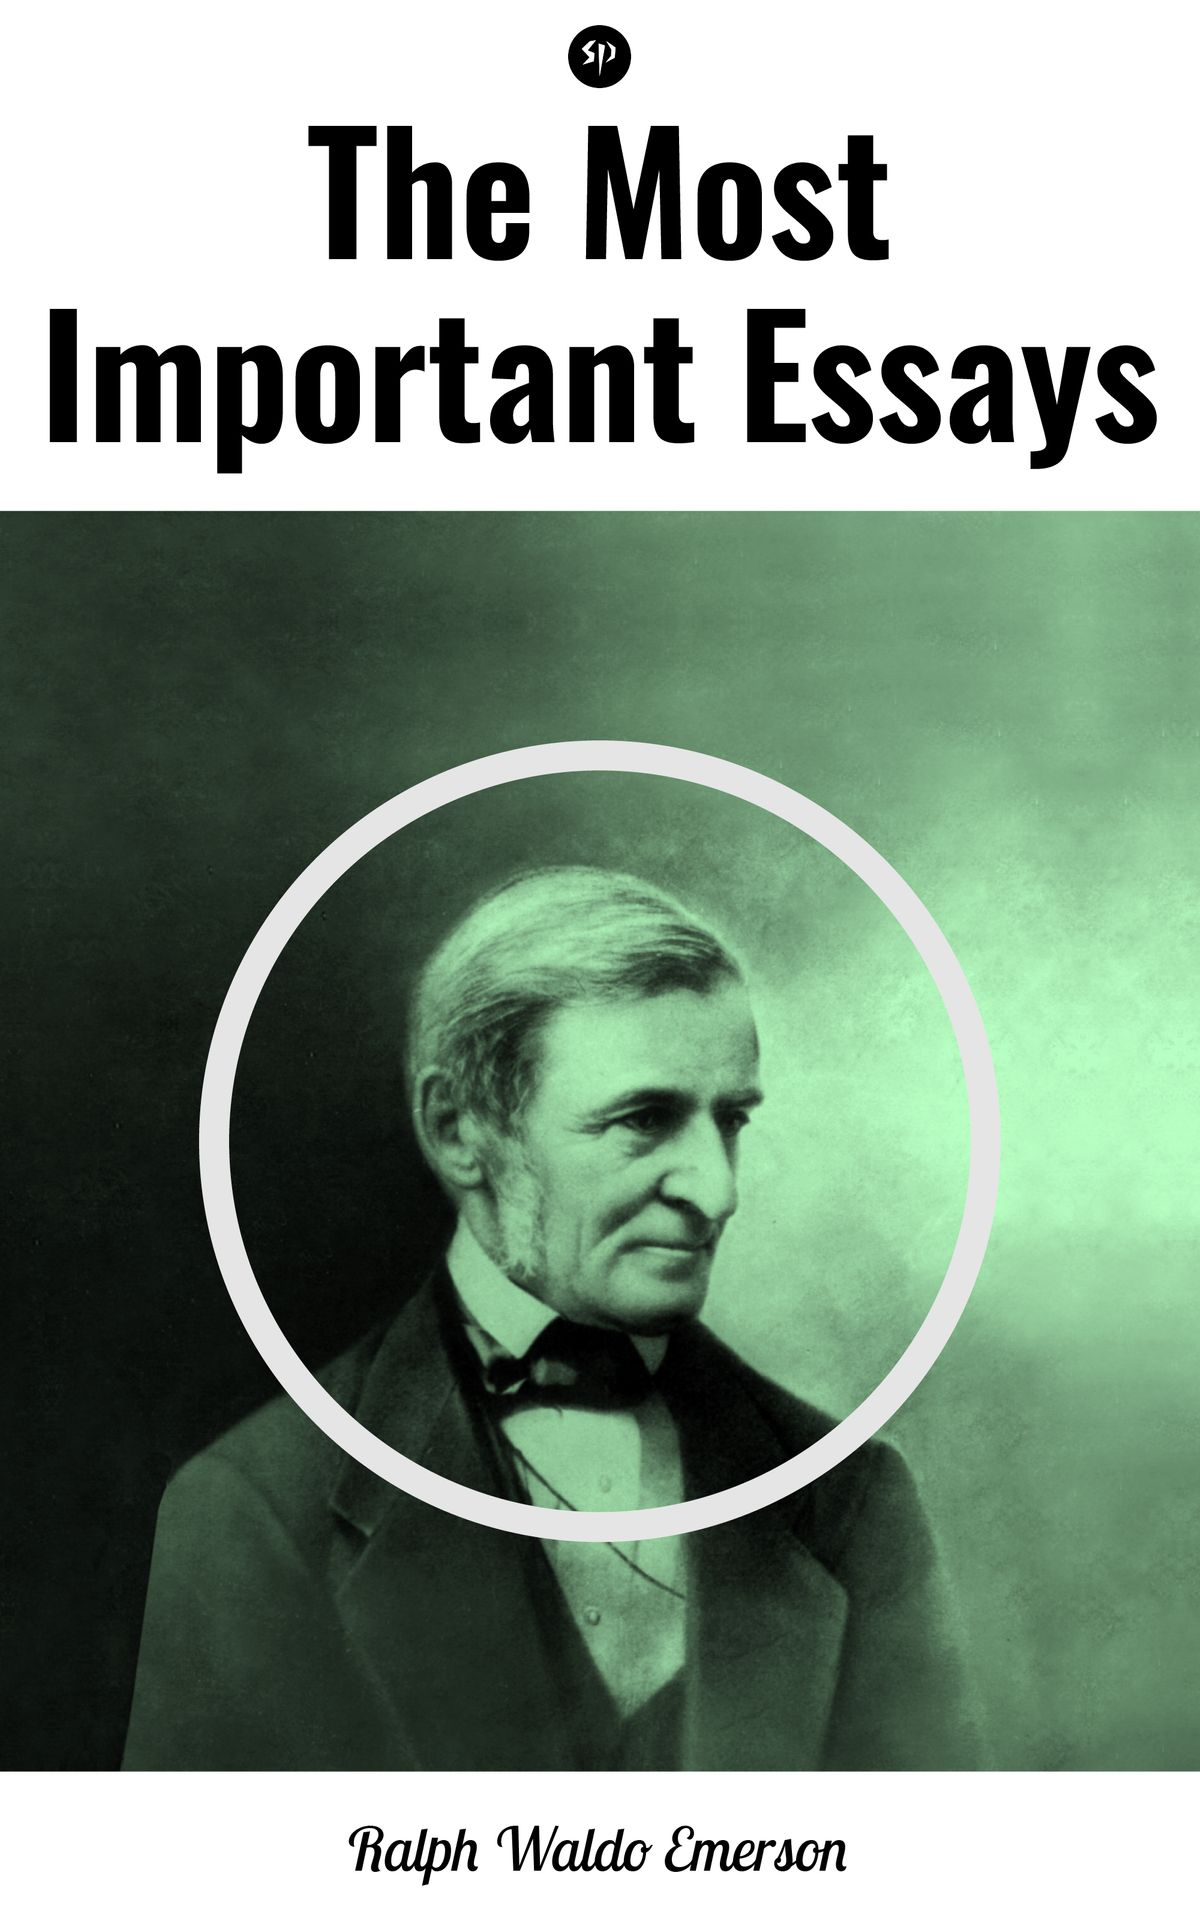 019 Essay Example Ralph Waldo Emerson Essays The Most Important Unusual Nature And Selected By Pdf Download First Second Series Full